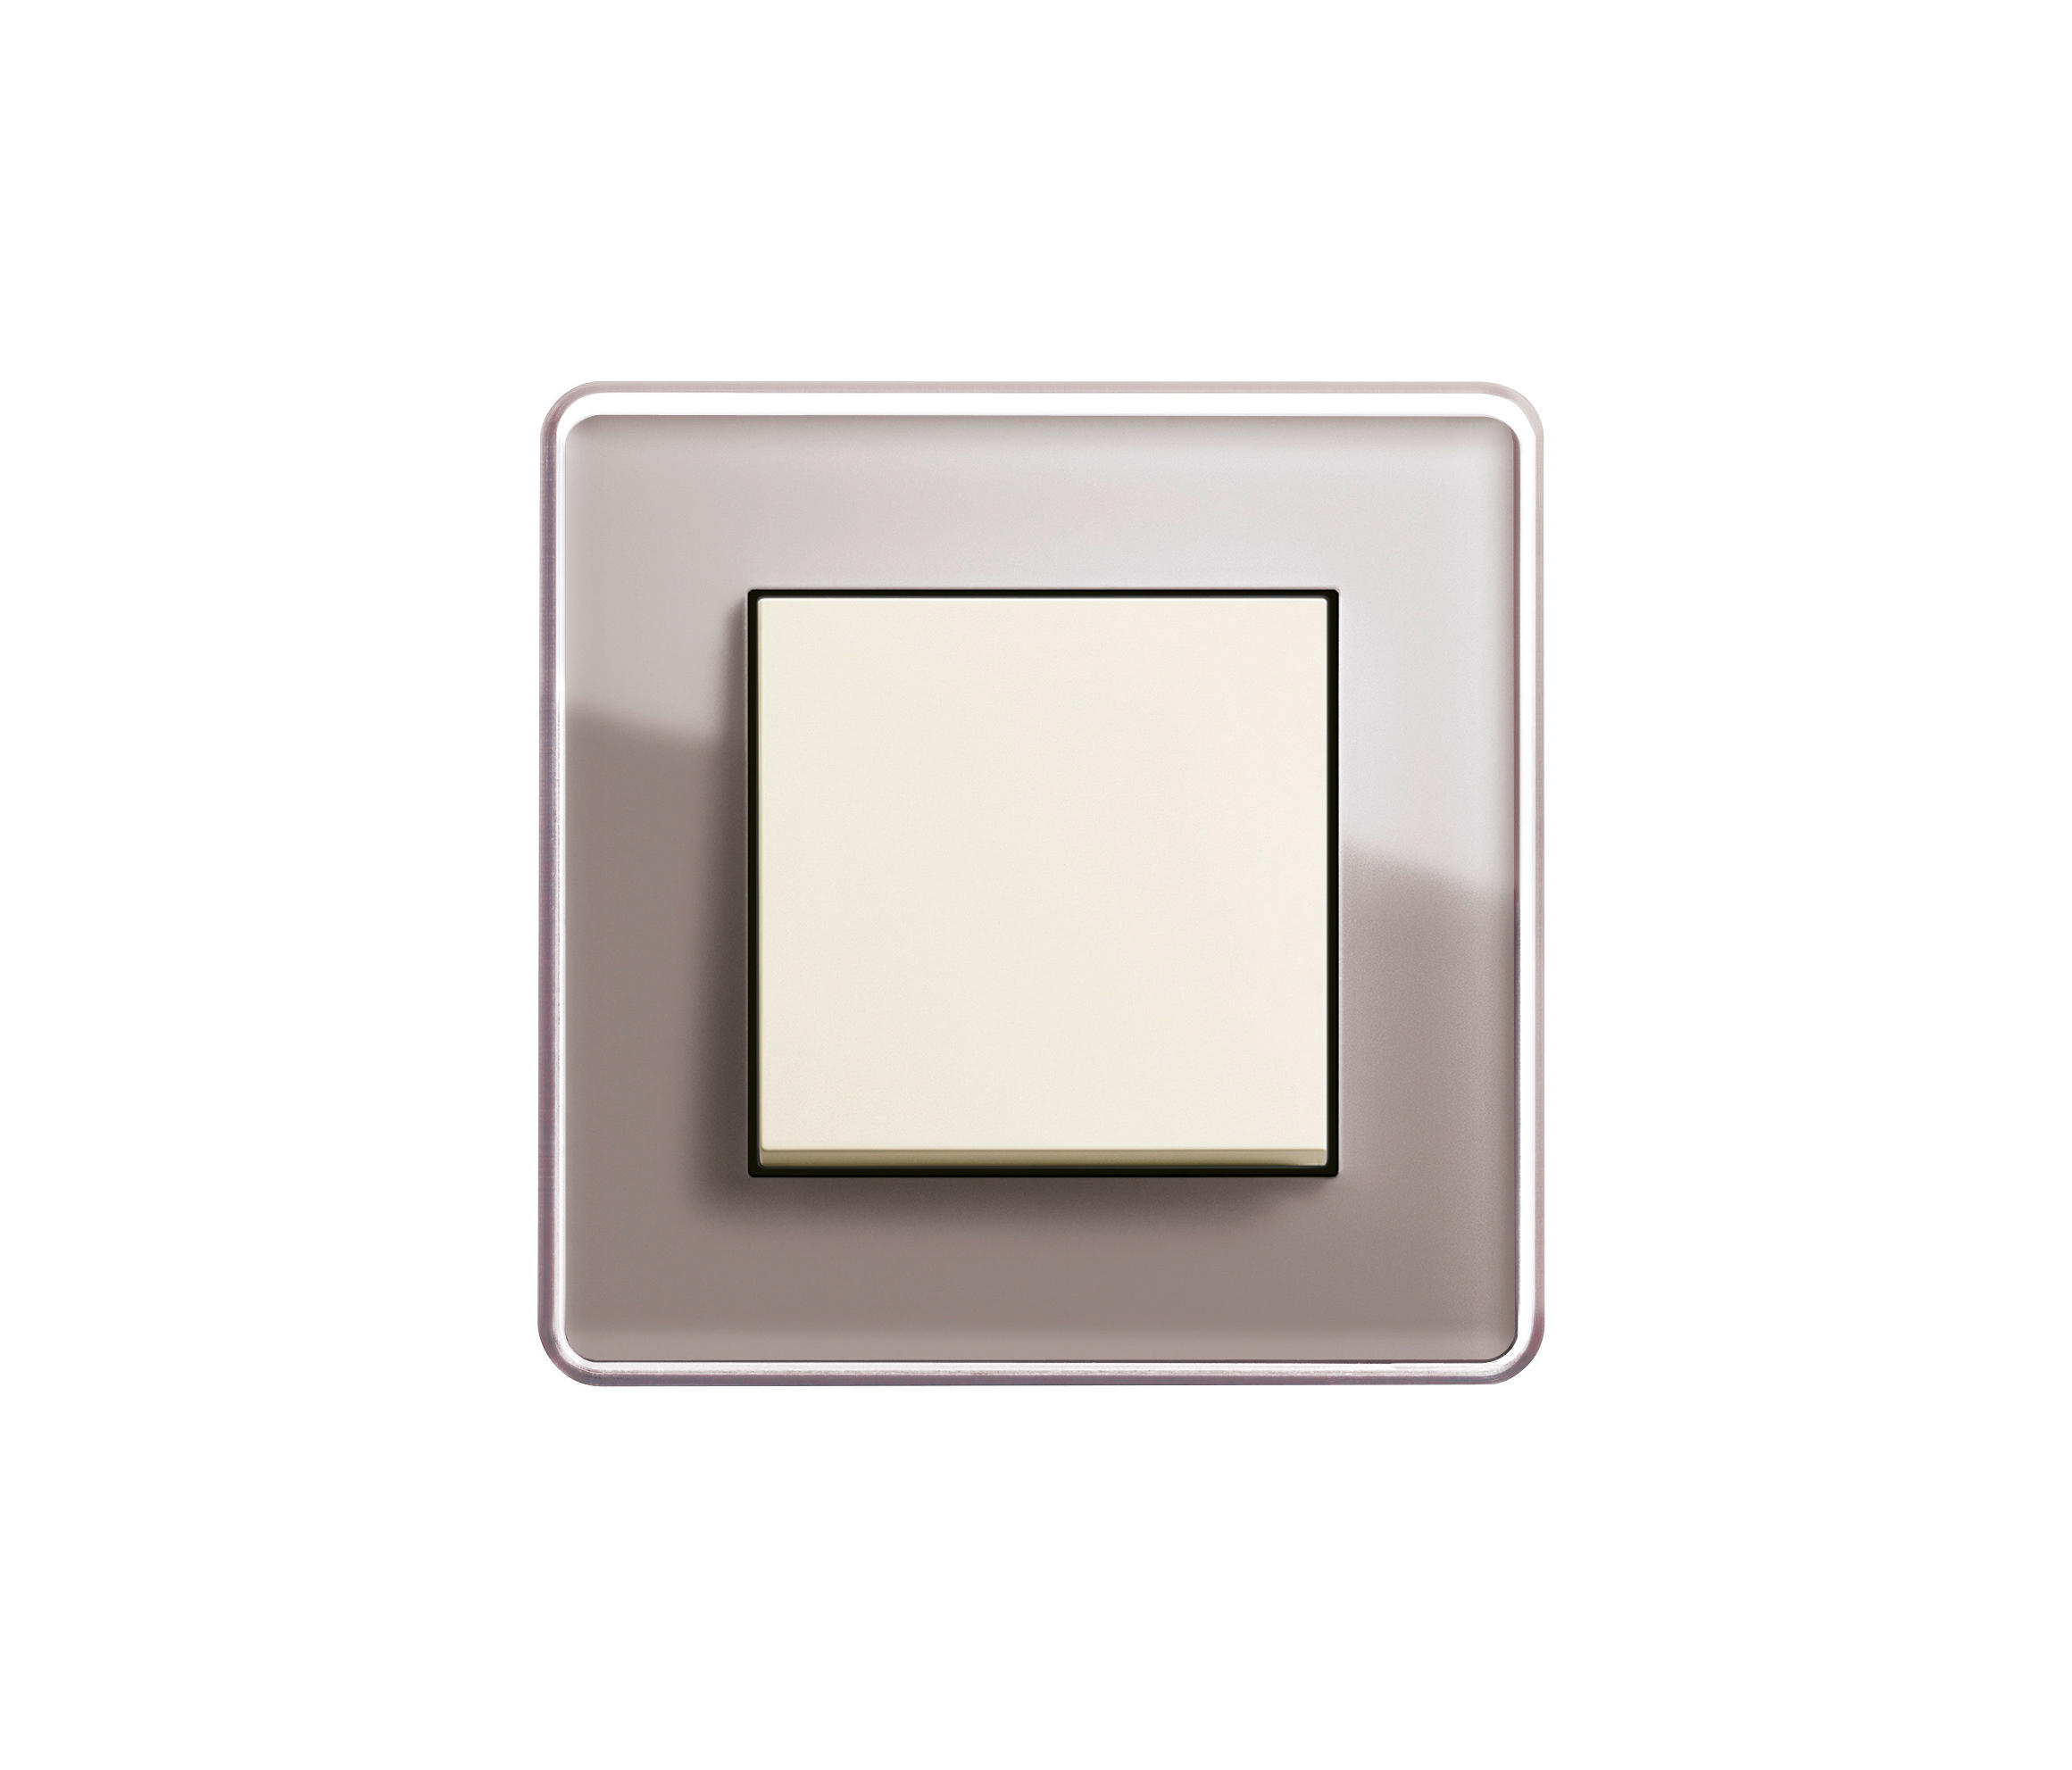 esprit glass c switch range push button switches from. Black Bedroom Furniture Sets. Home Design Ideas